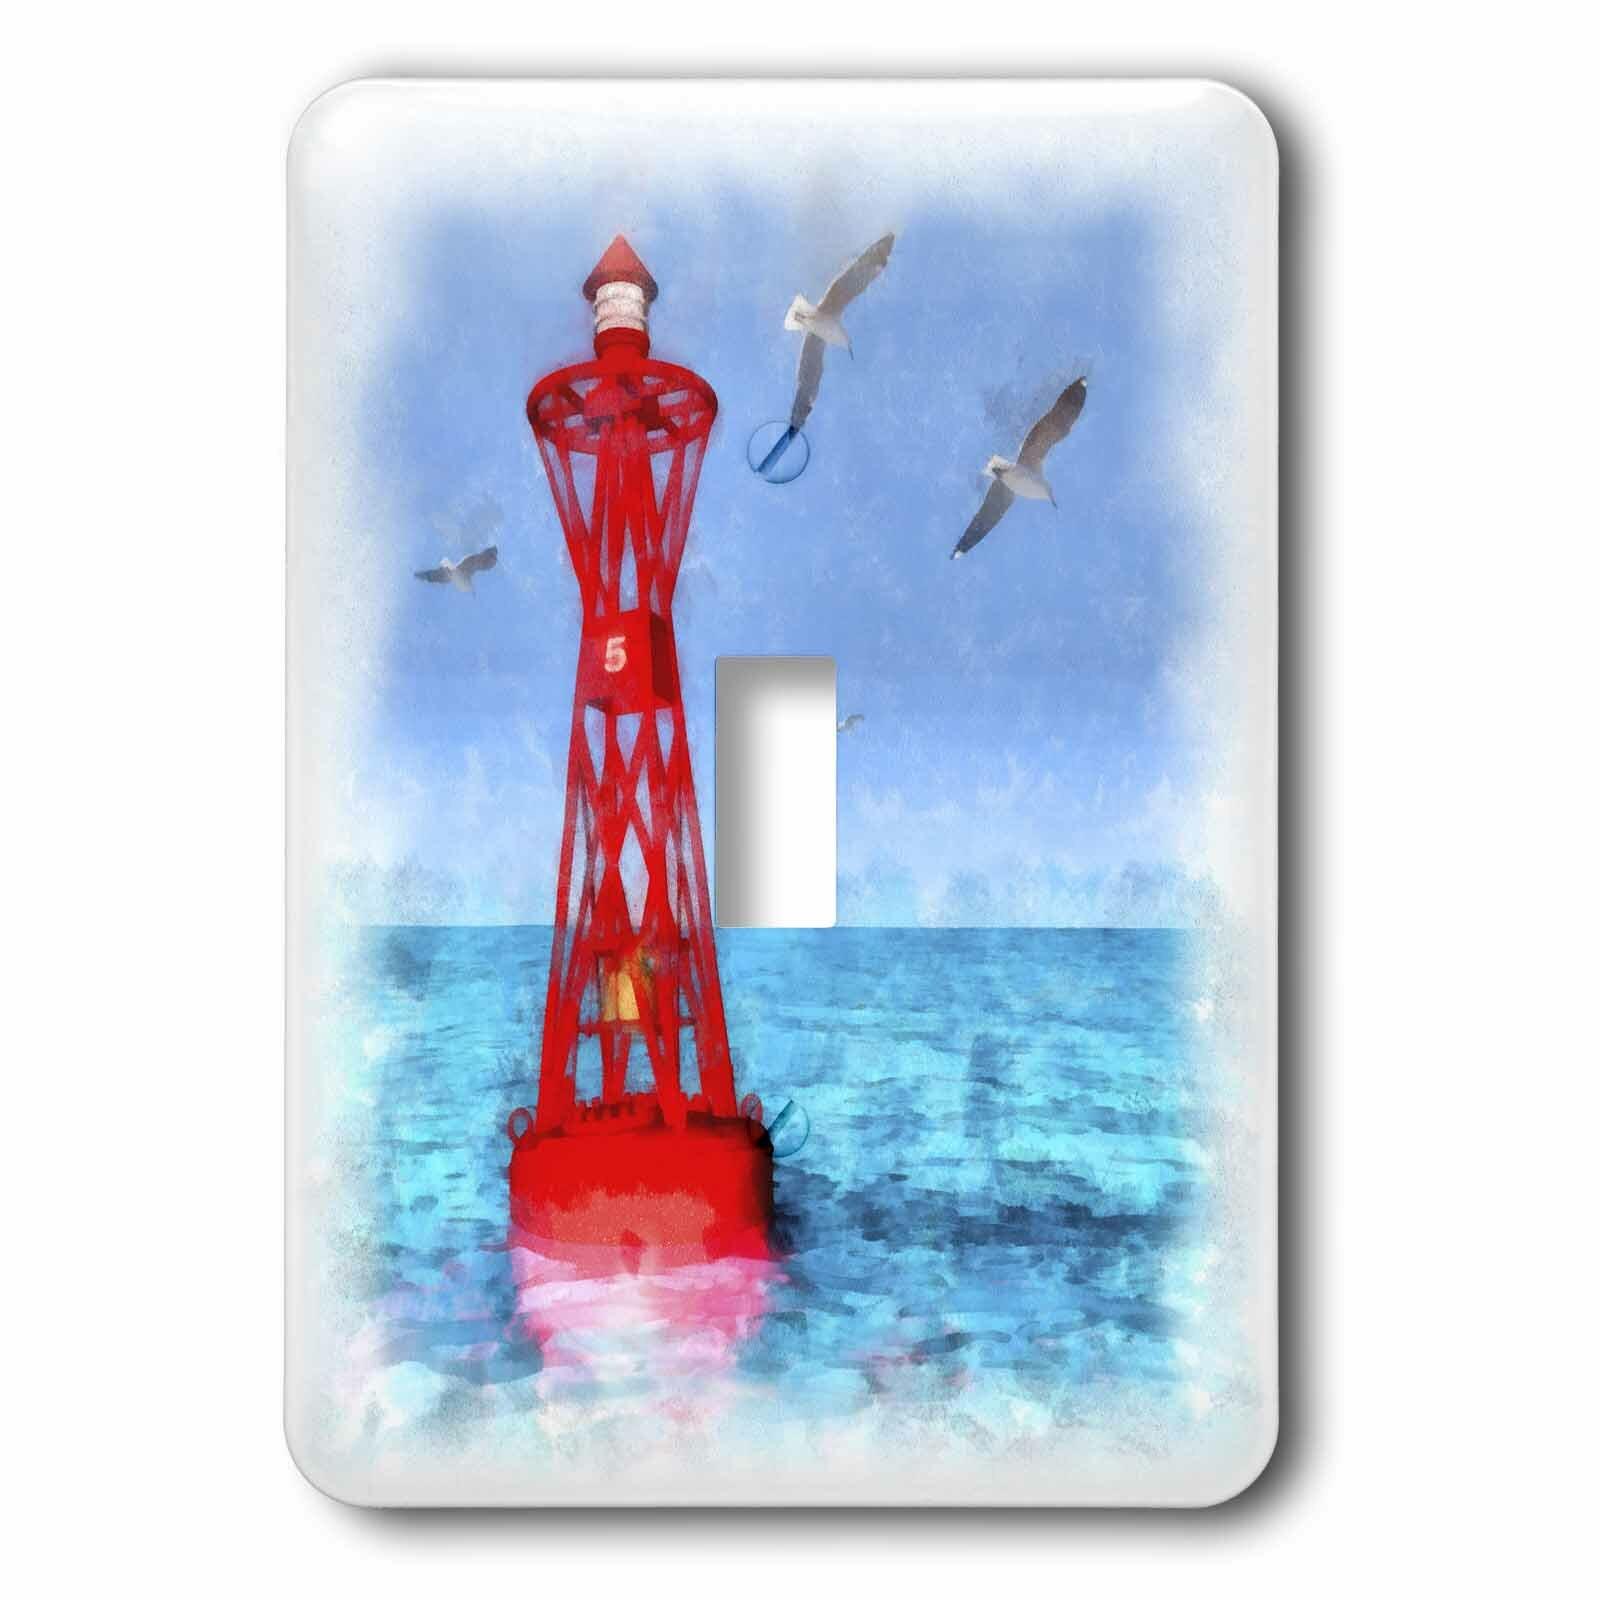 3drose Buoy And Seagulls 1 Gang Toggle Light Switch Wall Plate Wayfair